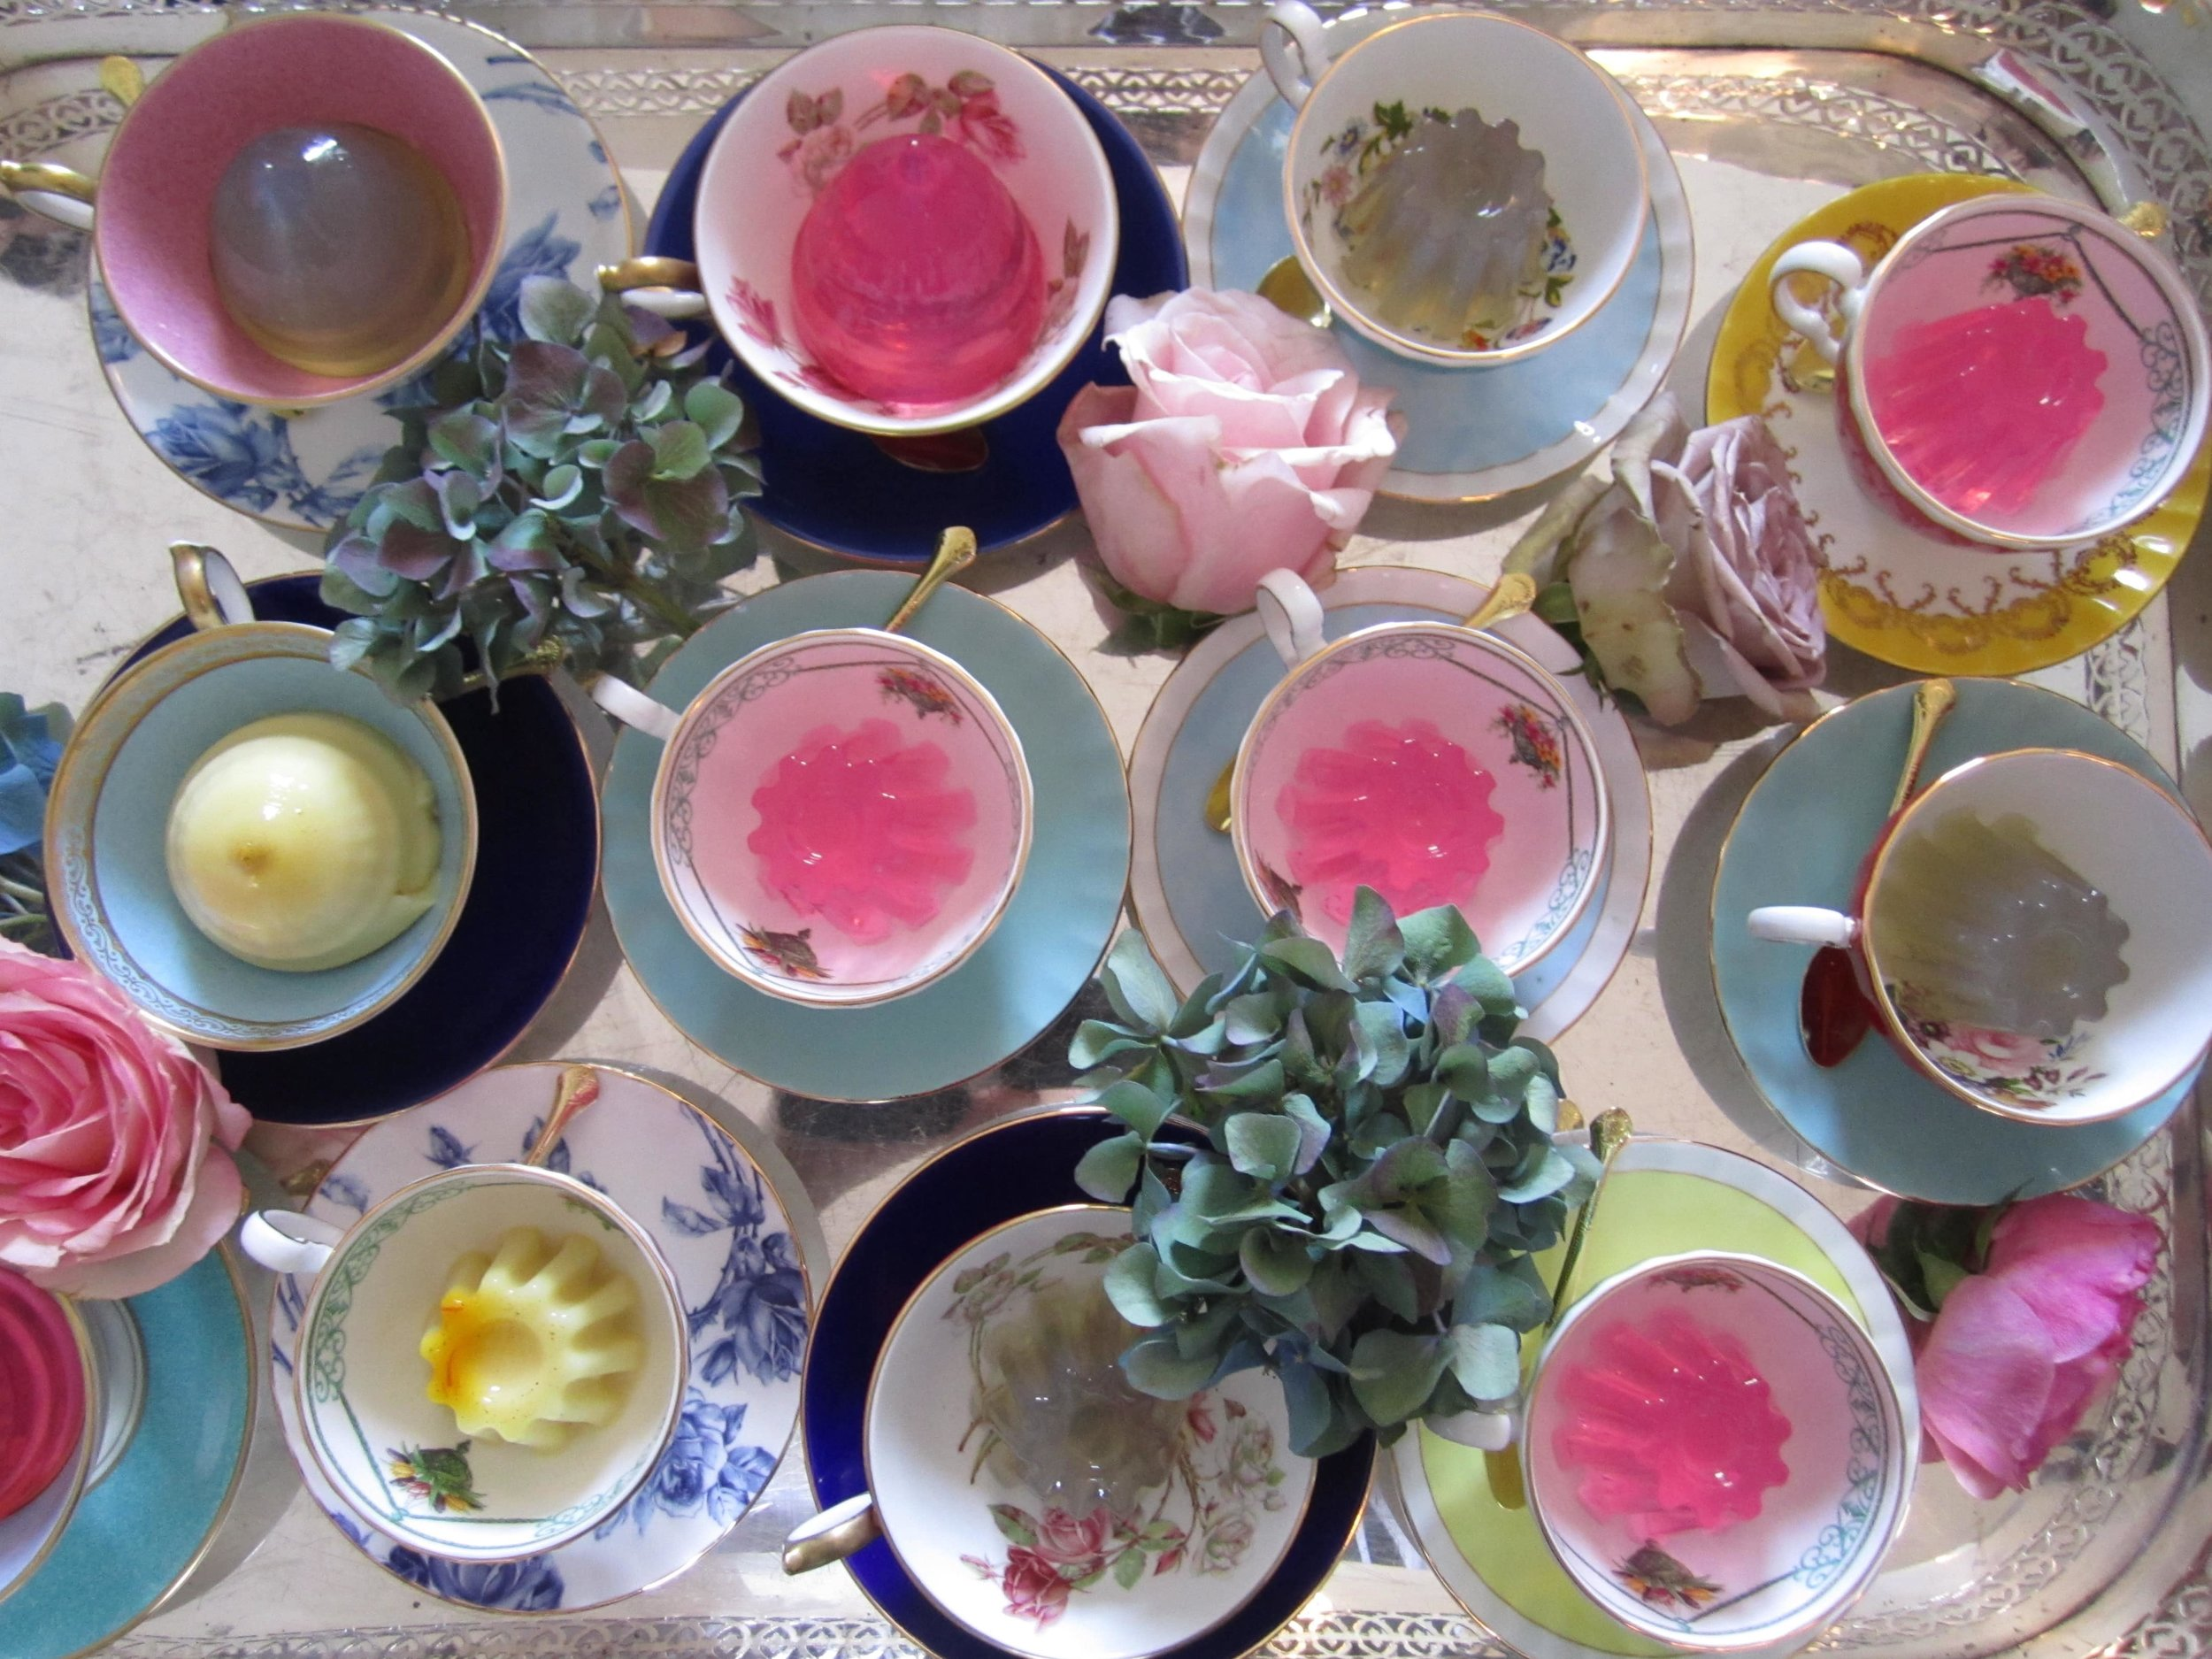 Bompas and Parr jelly displayed in teacups